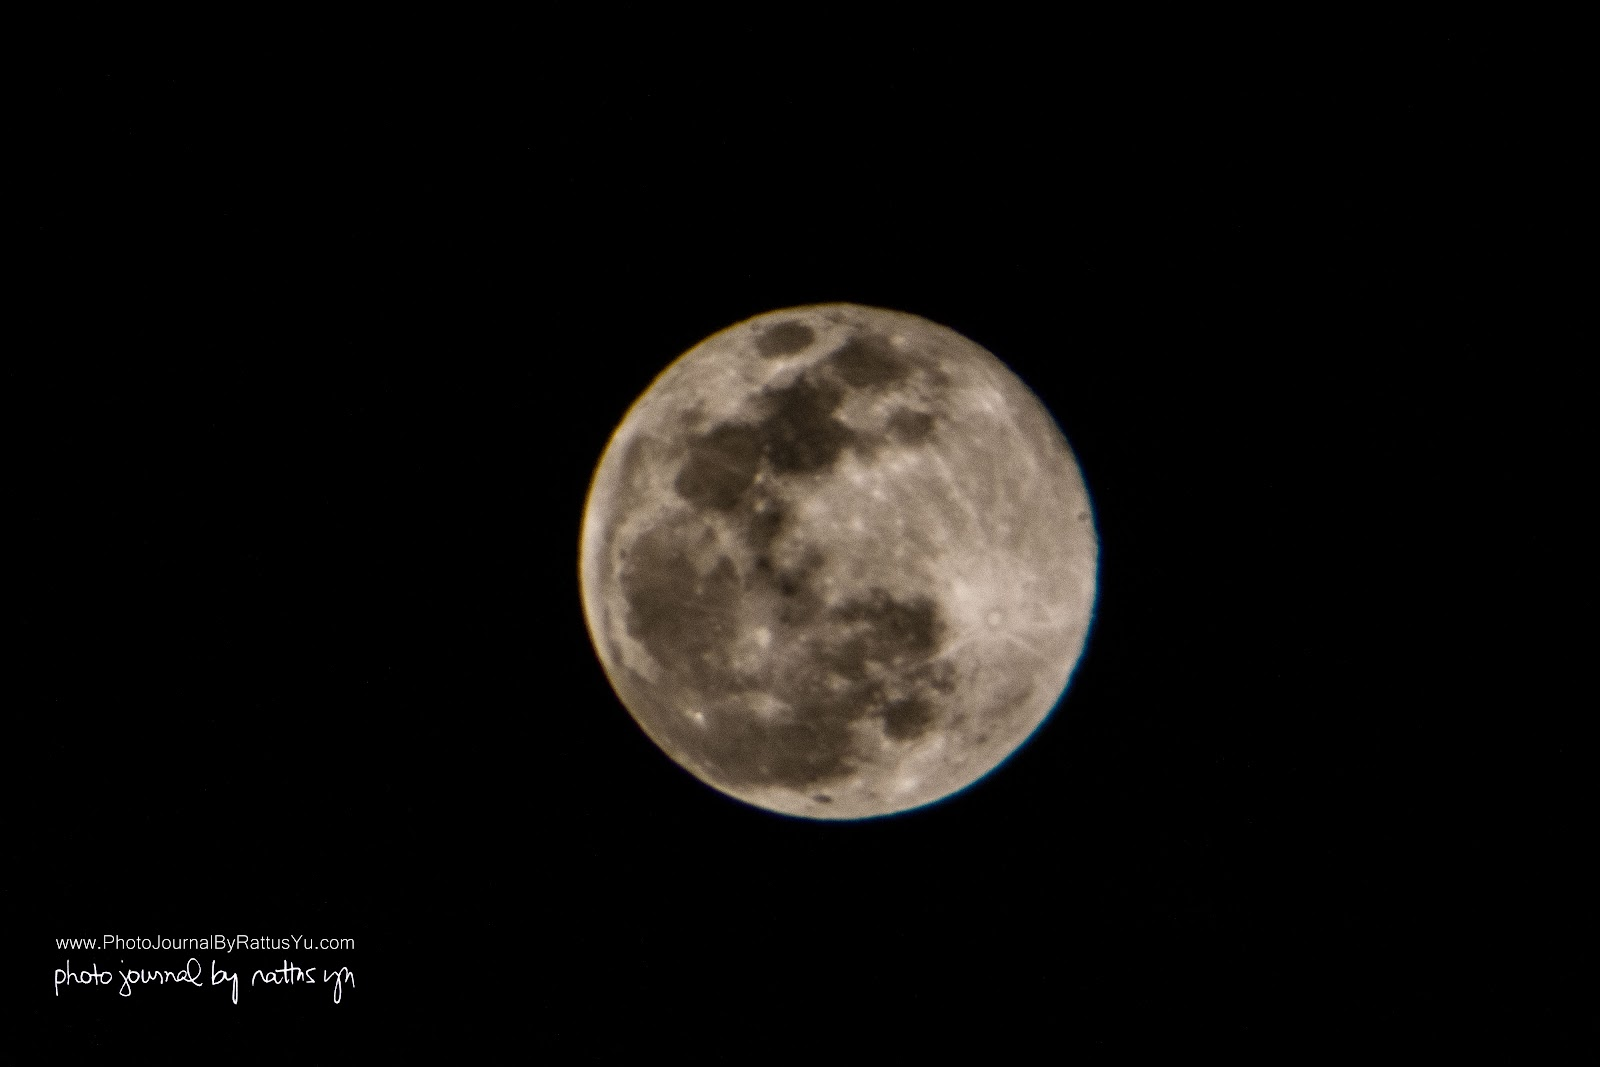 April 22, 2016: The World's Smallest Full Moon, Shot At Manila Bay